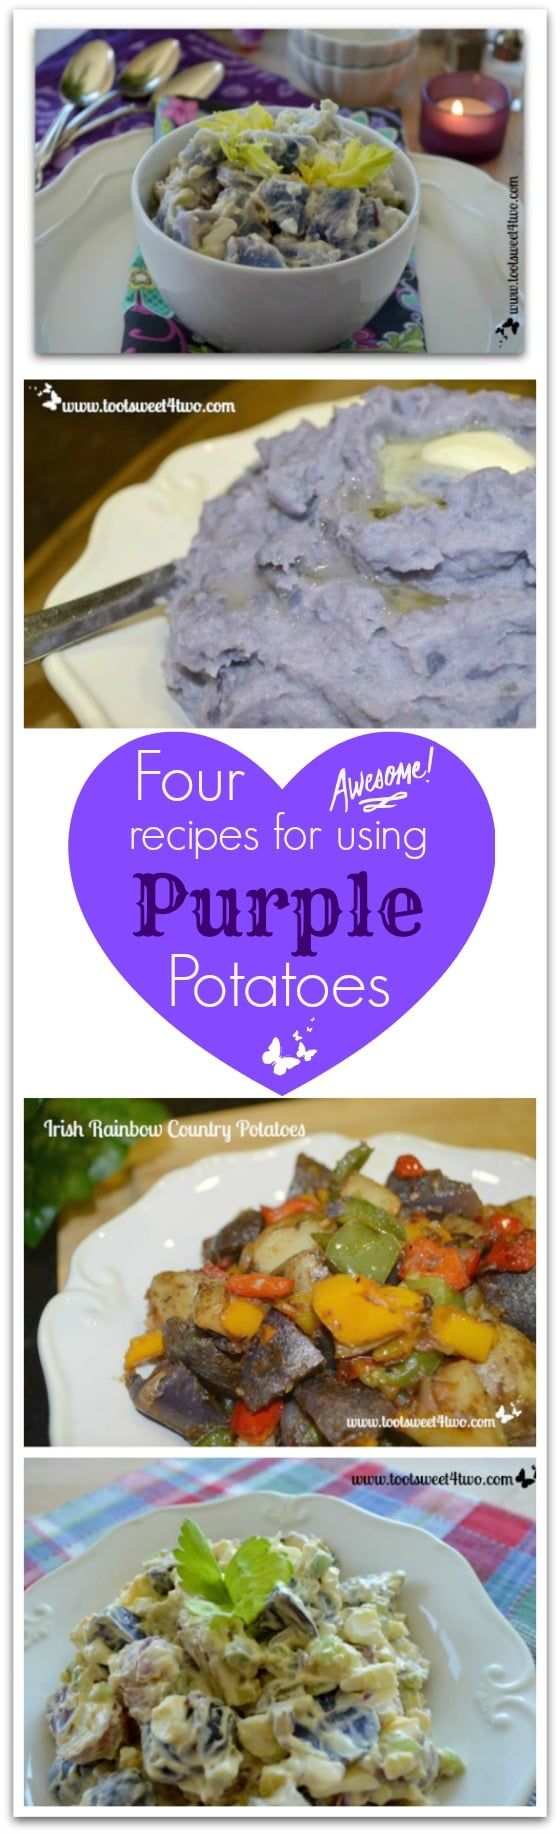 Four Awesome Recipes for using Purple Potatoes